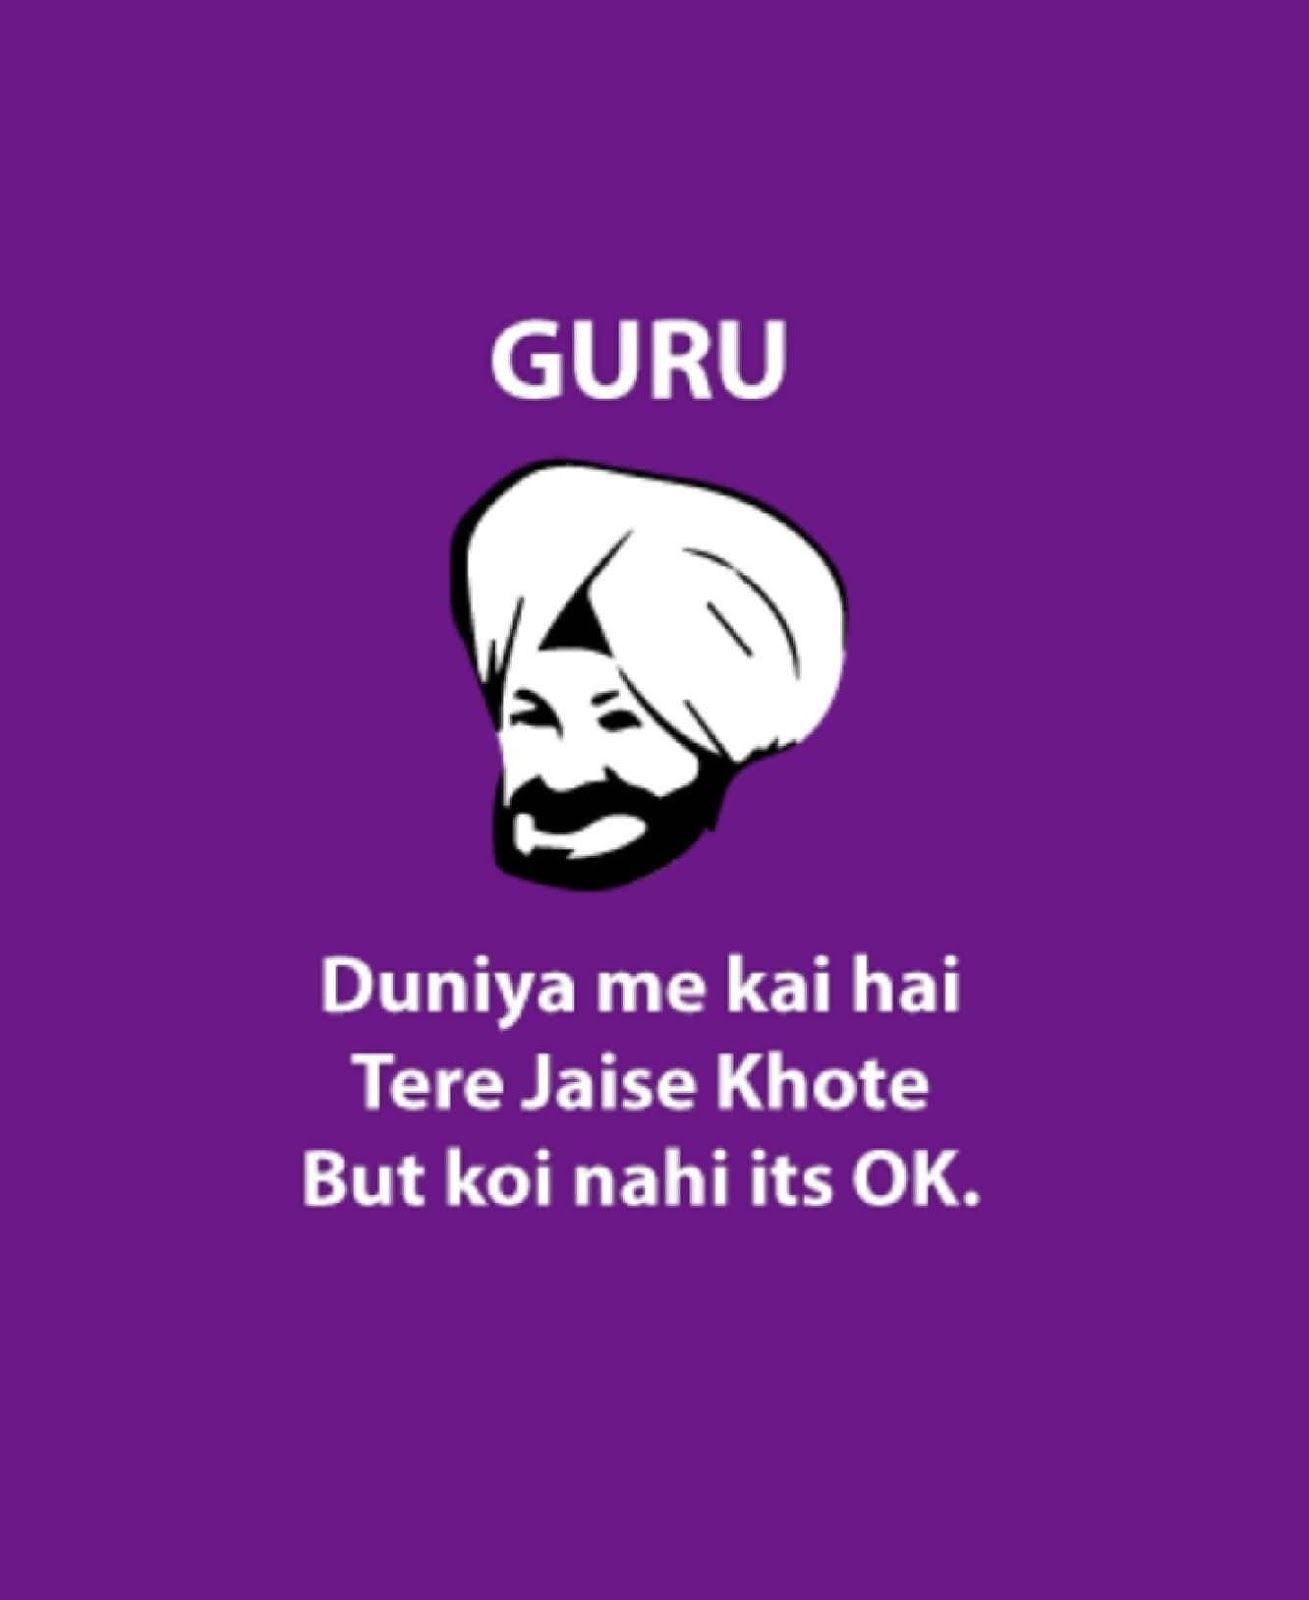 Pictures being single is my attitude p funny joke and attitude image - Funny Whatsapp Dp